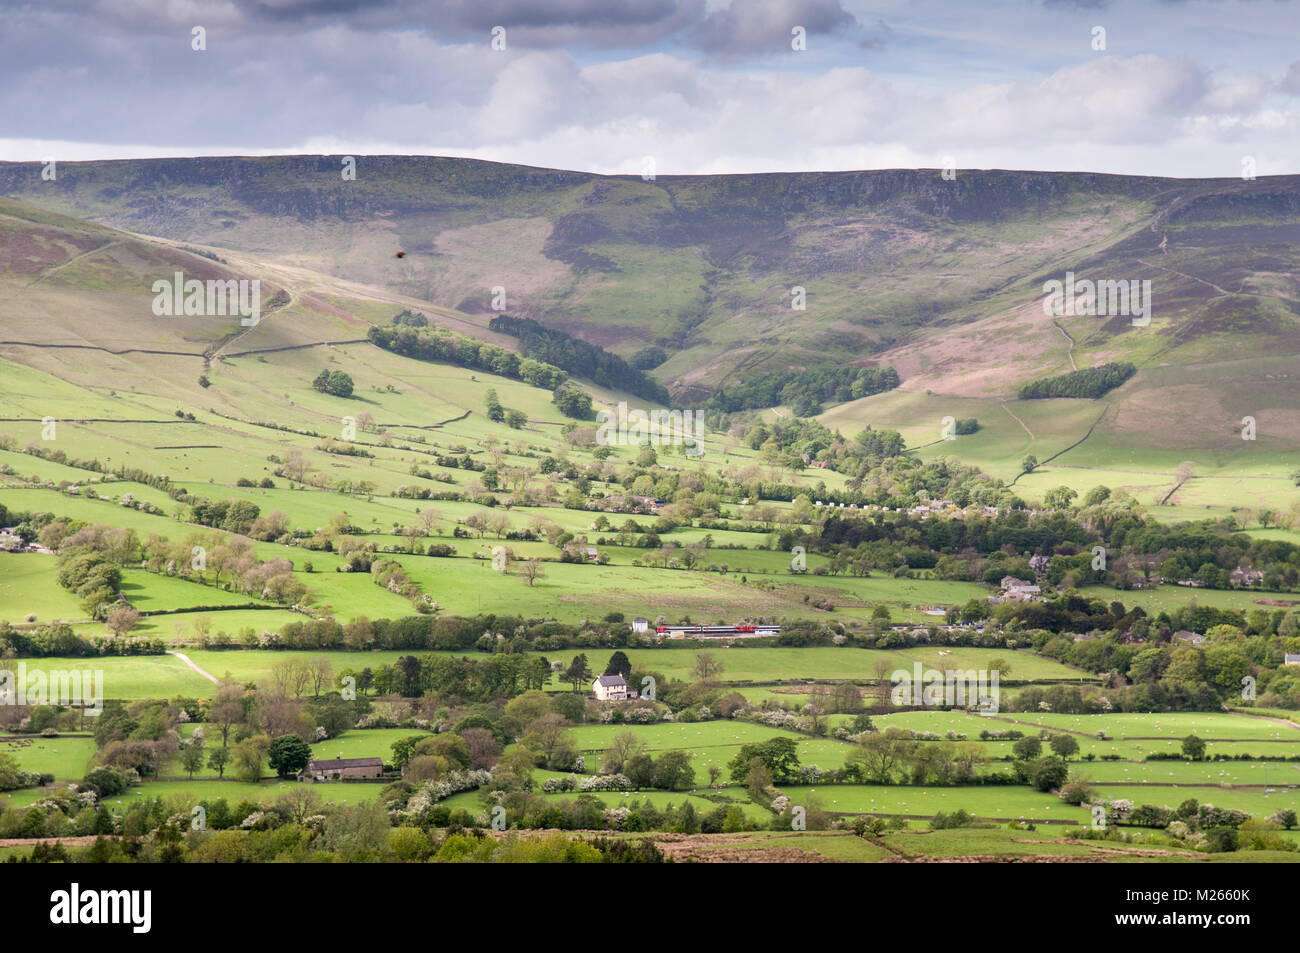 The moorland plateau of Kinder Scout rises above the lush pasture fields of Edale valley in Derbyshire, in England's - Stock Image